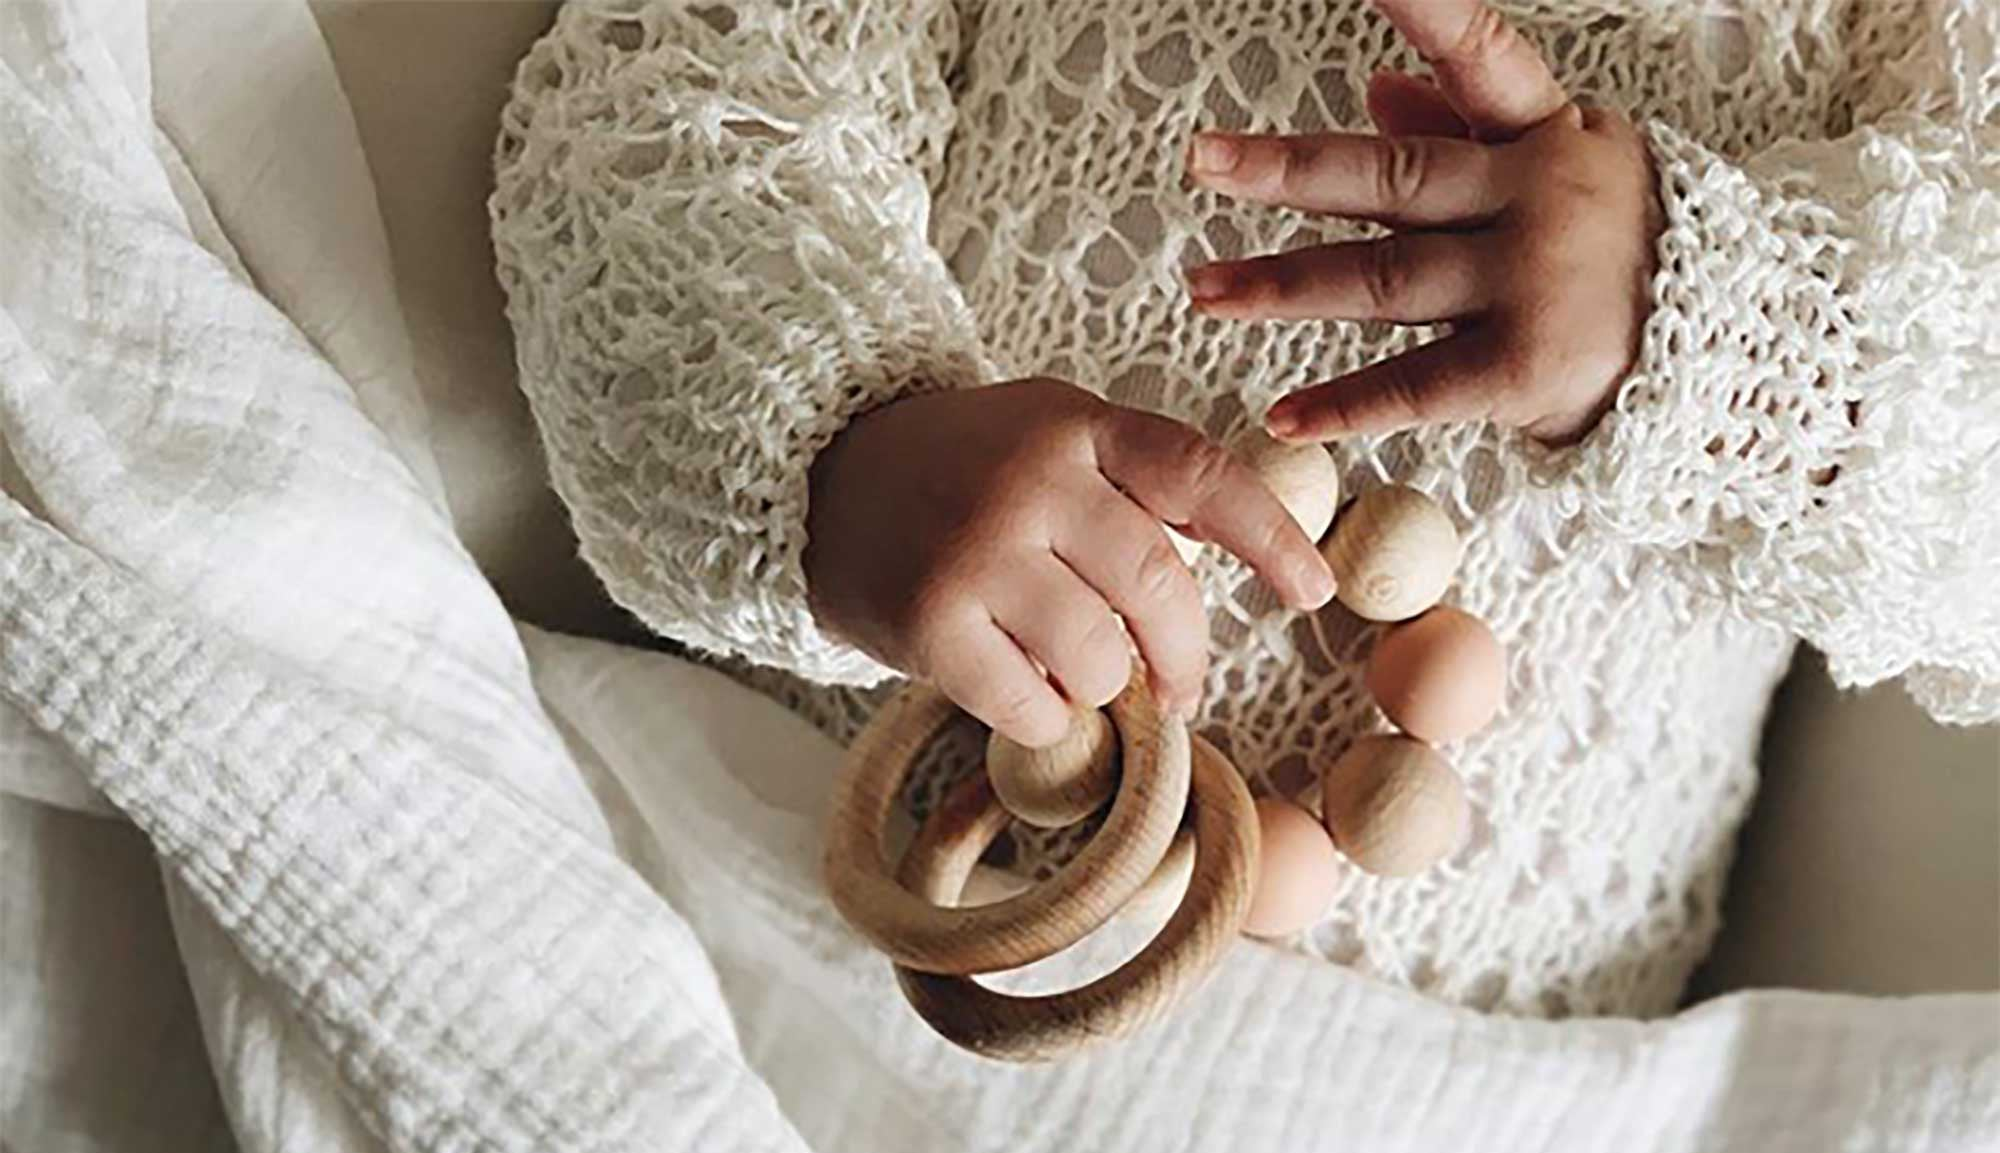 Baby clutching a wooden teether